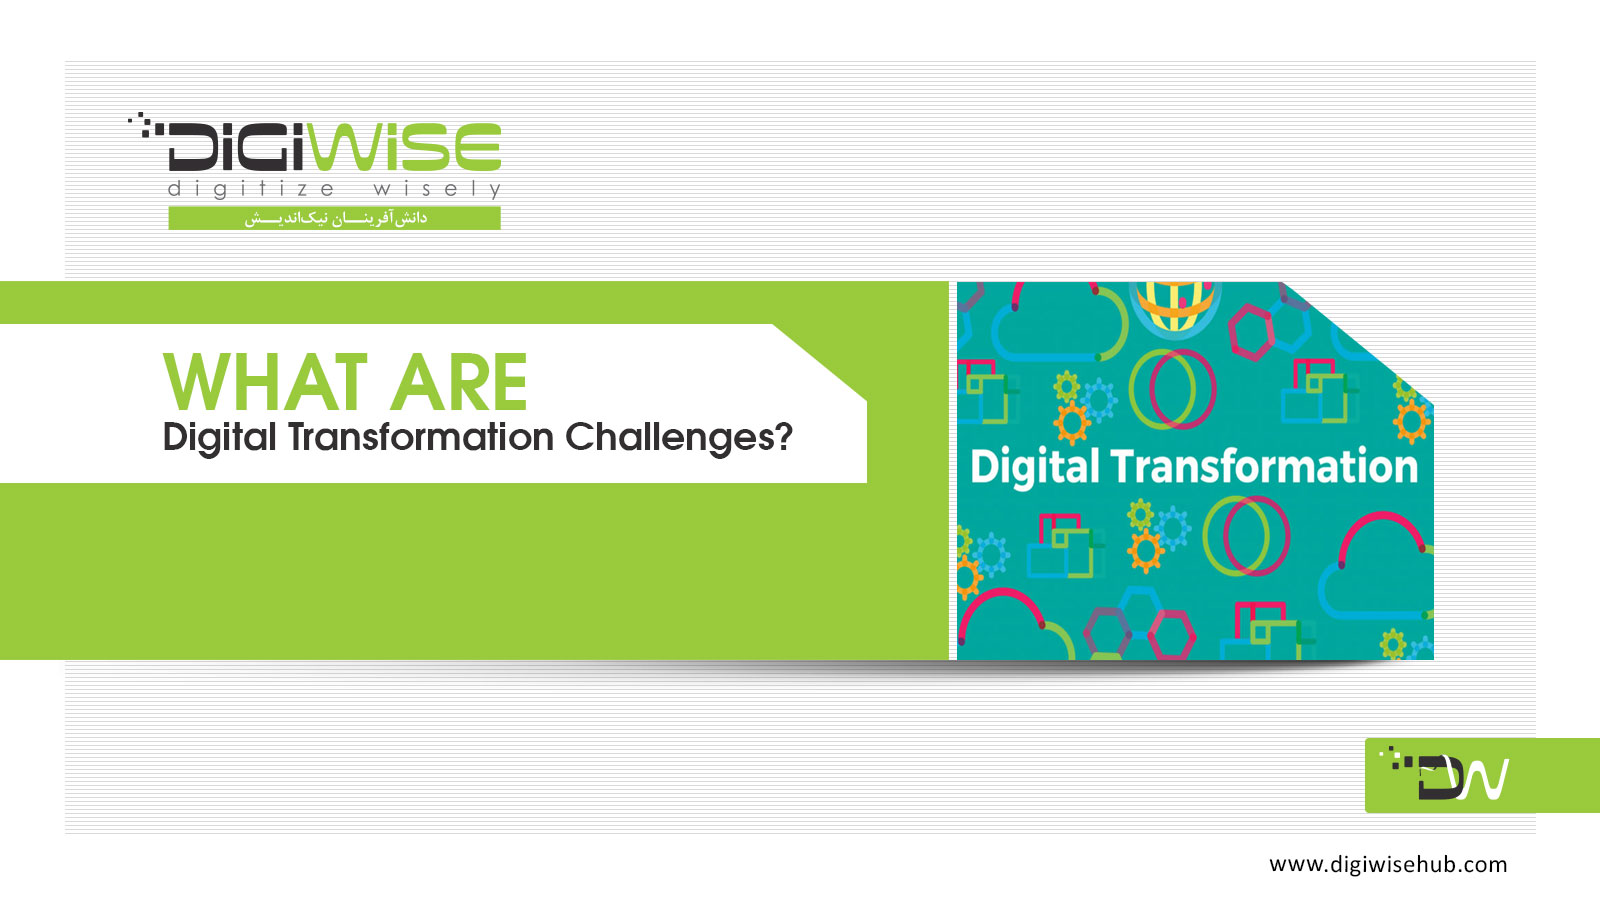 What are Digital Transformation Challenges?